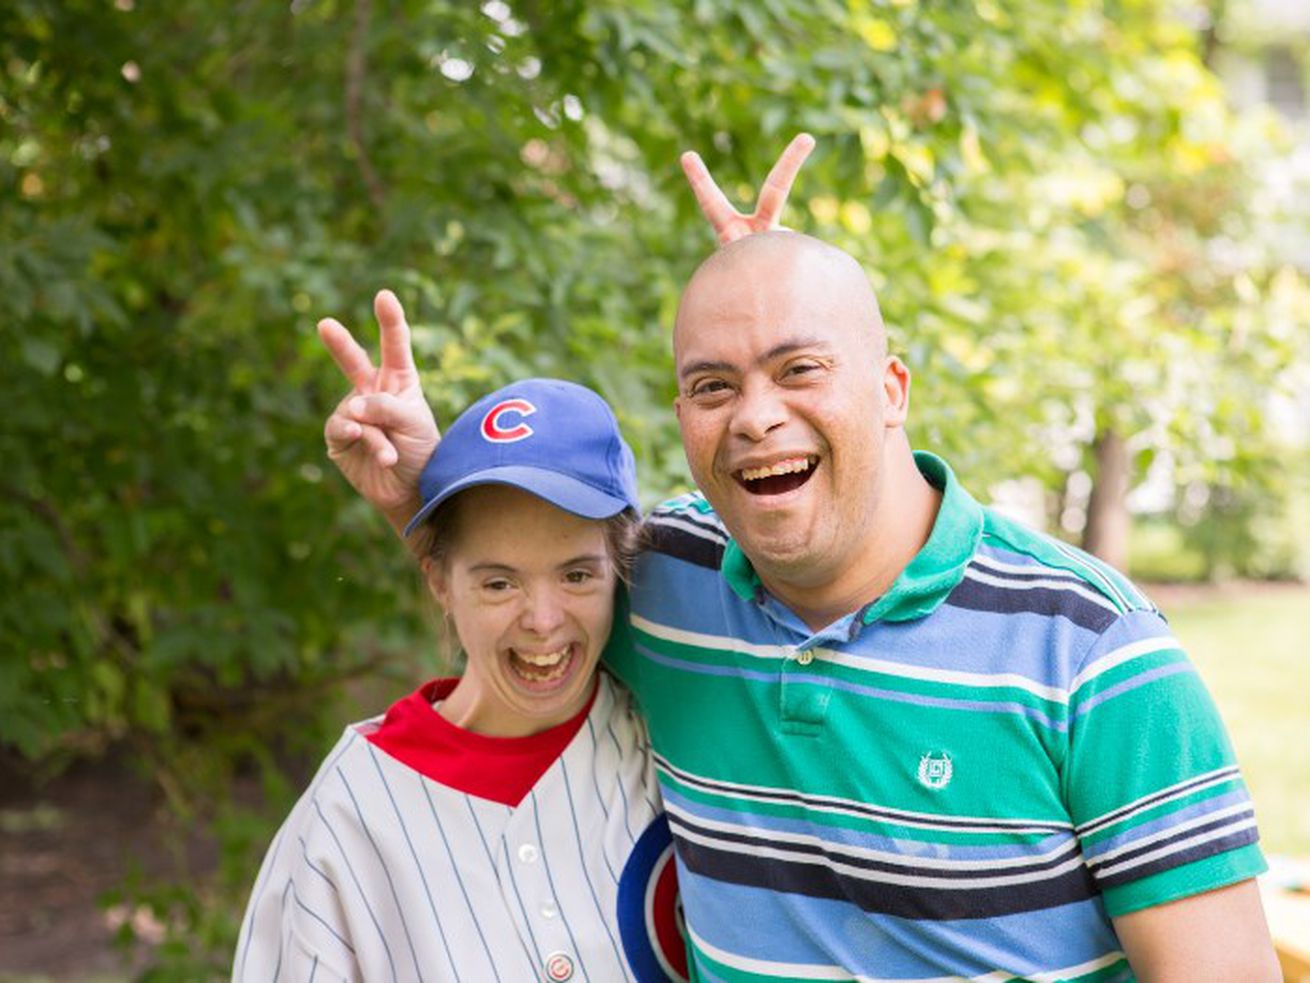 Alicia and Marcus are residents of community homes operated by Aspire, one of the nonprofit service providers pushing for the Illinois Legislature to make good on the state's funding commitment to people with intellectual and developmental disabilities.